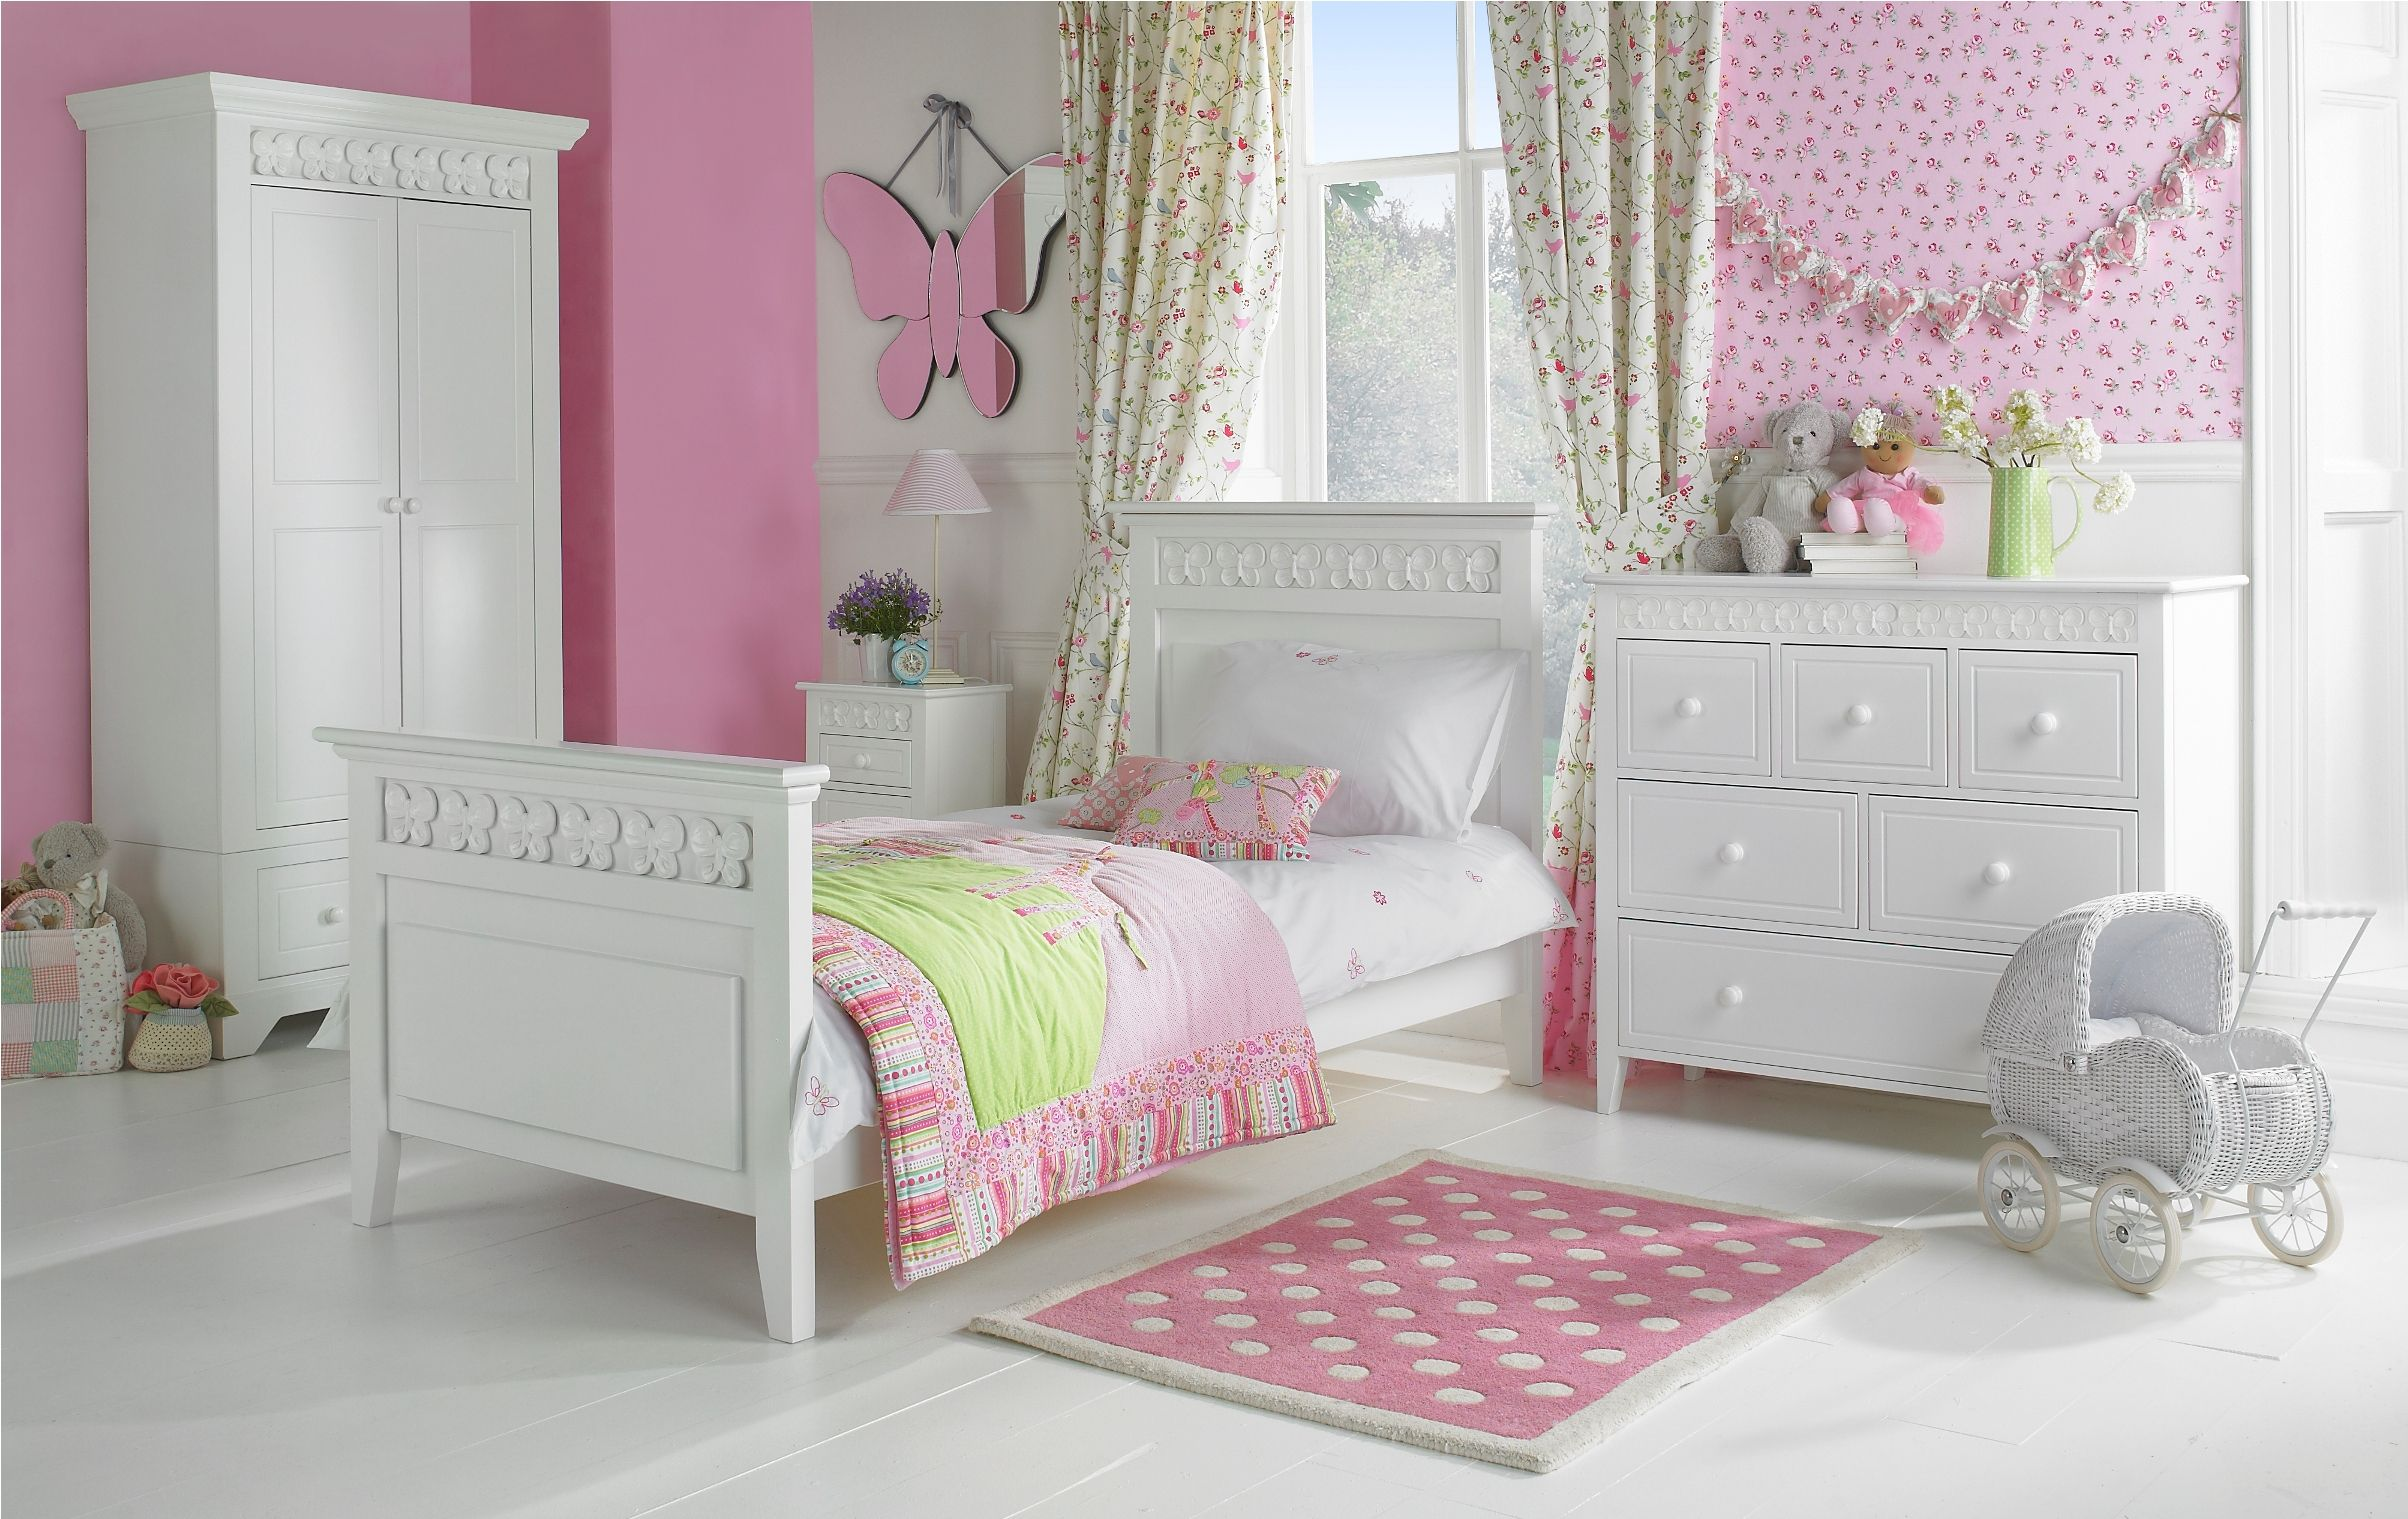 Brilliant Kids Girls Bedroom Furniture Sets White Image3 Furniture Best Kids Bedroom Set Decorating Inspiration